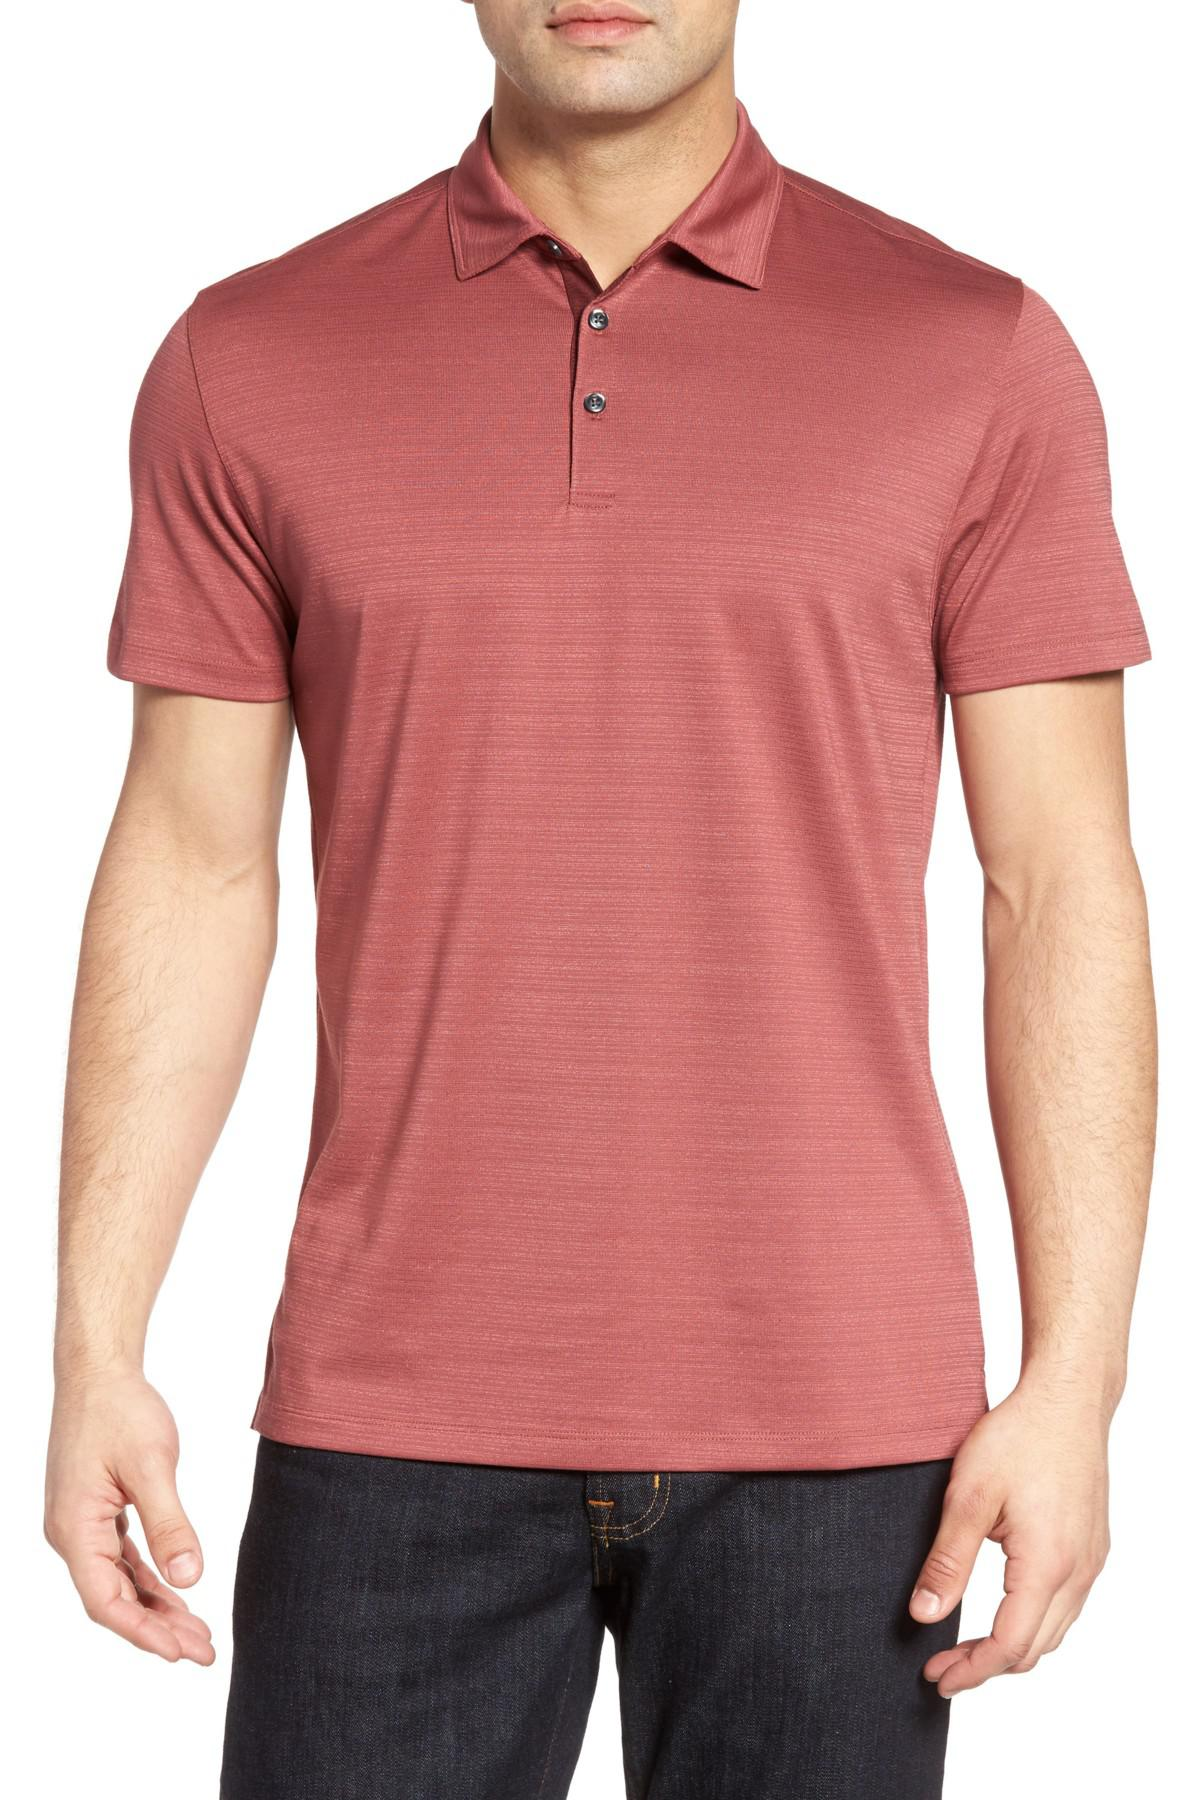 f009695f9 Lyst - Robert Barakett Walsh Polo in Pink for Men